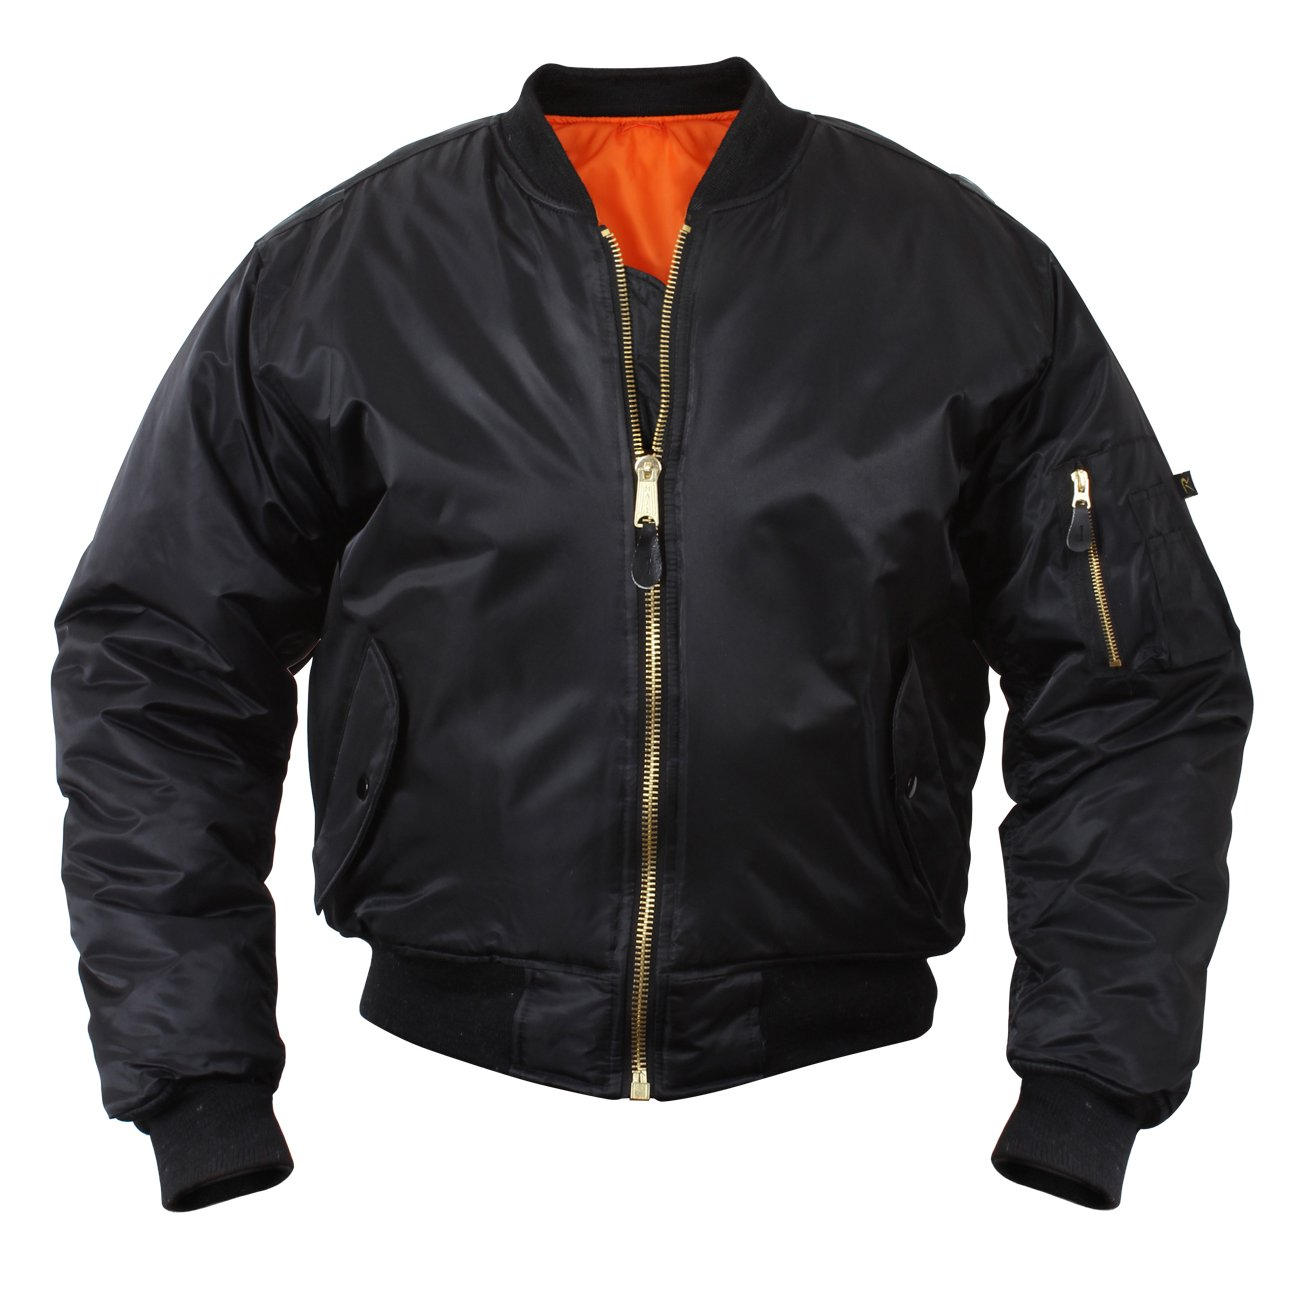 Amazon.com: Rothco Ma-1 Flight Jacket: Clothing